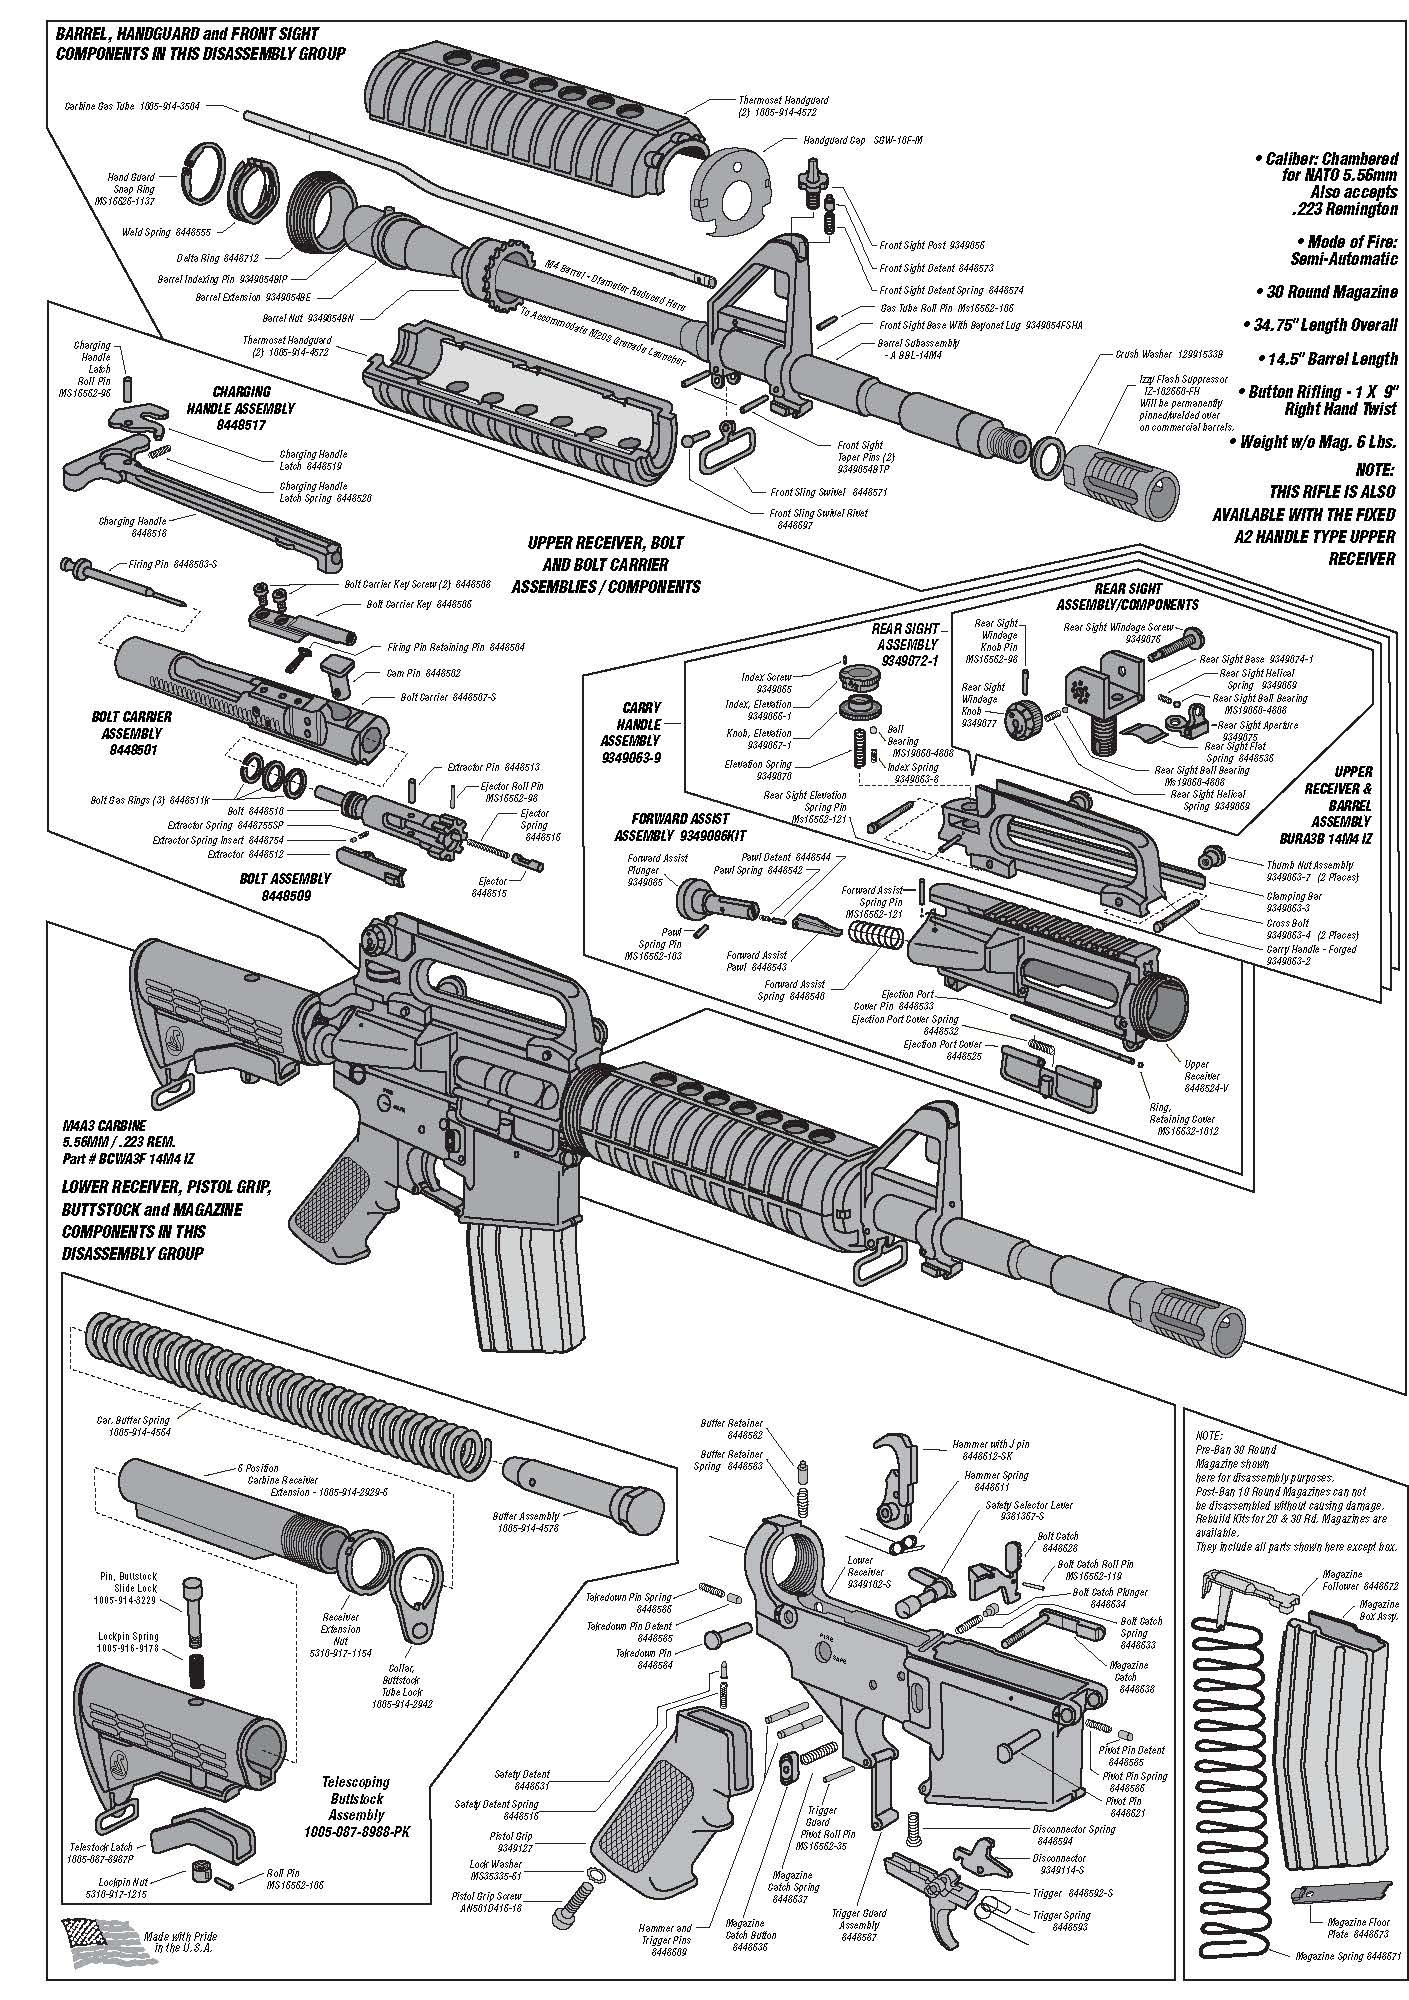 Weapons Ak 47 - Auto Electrical Wiring Diagram on